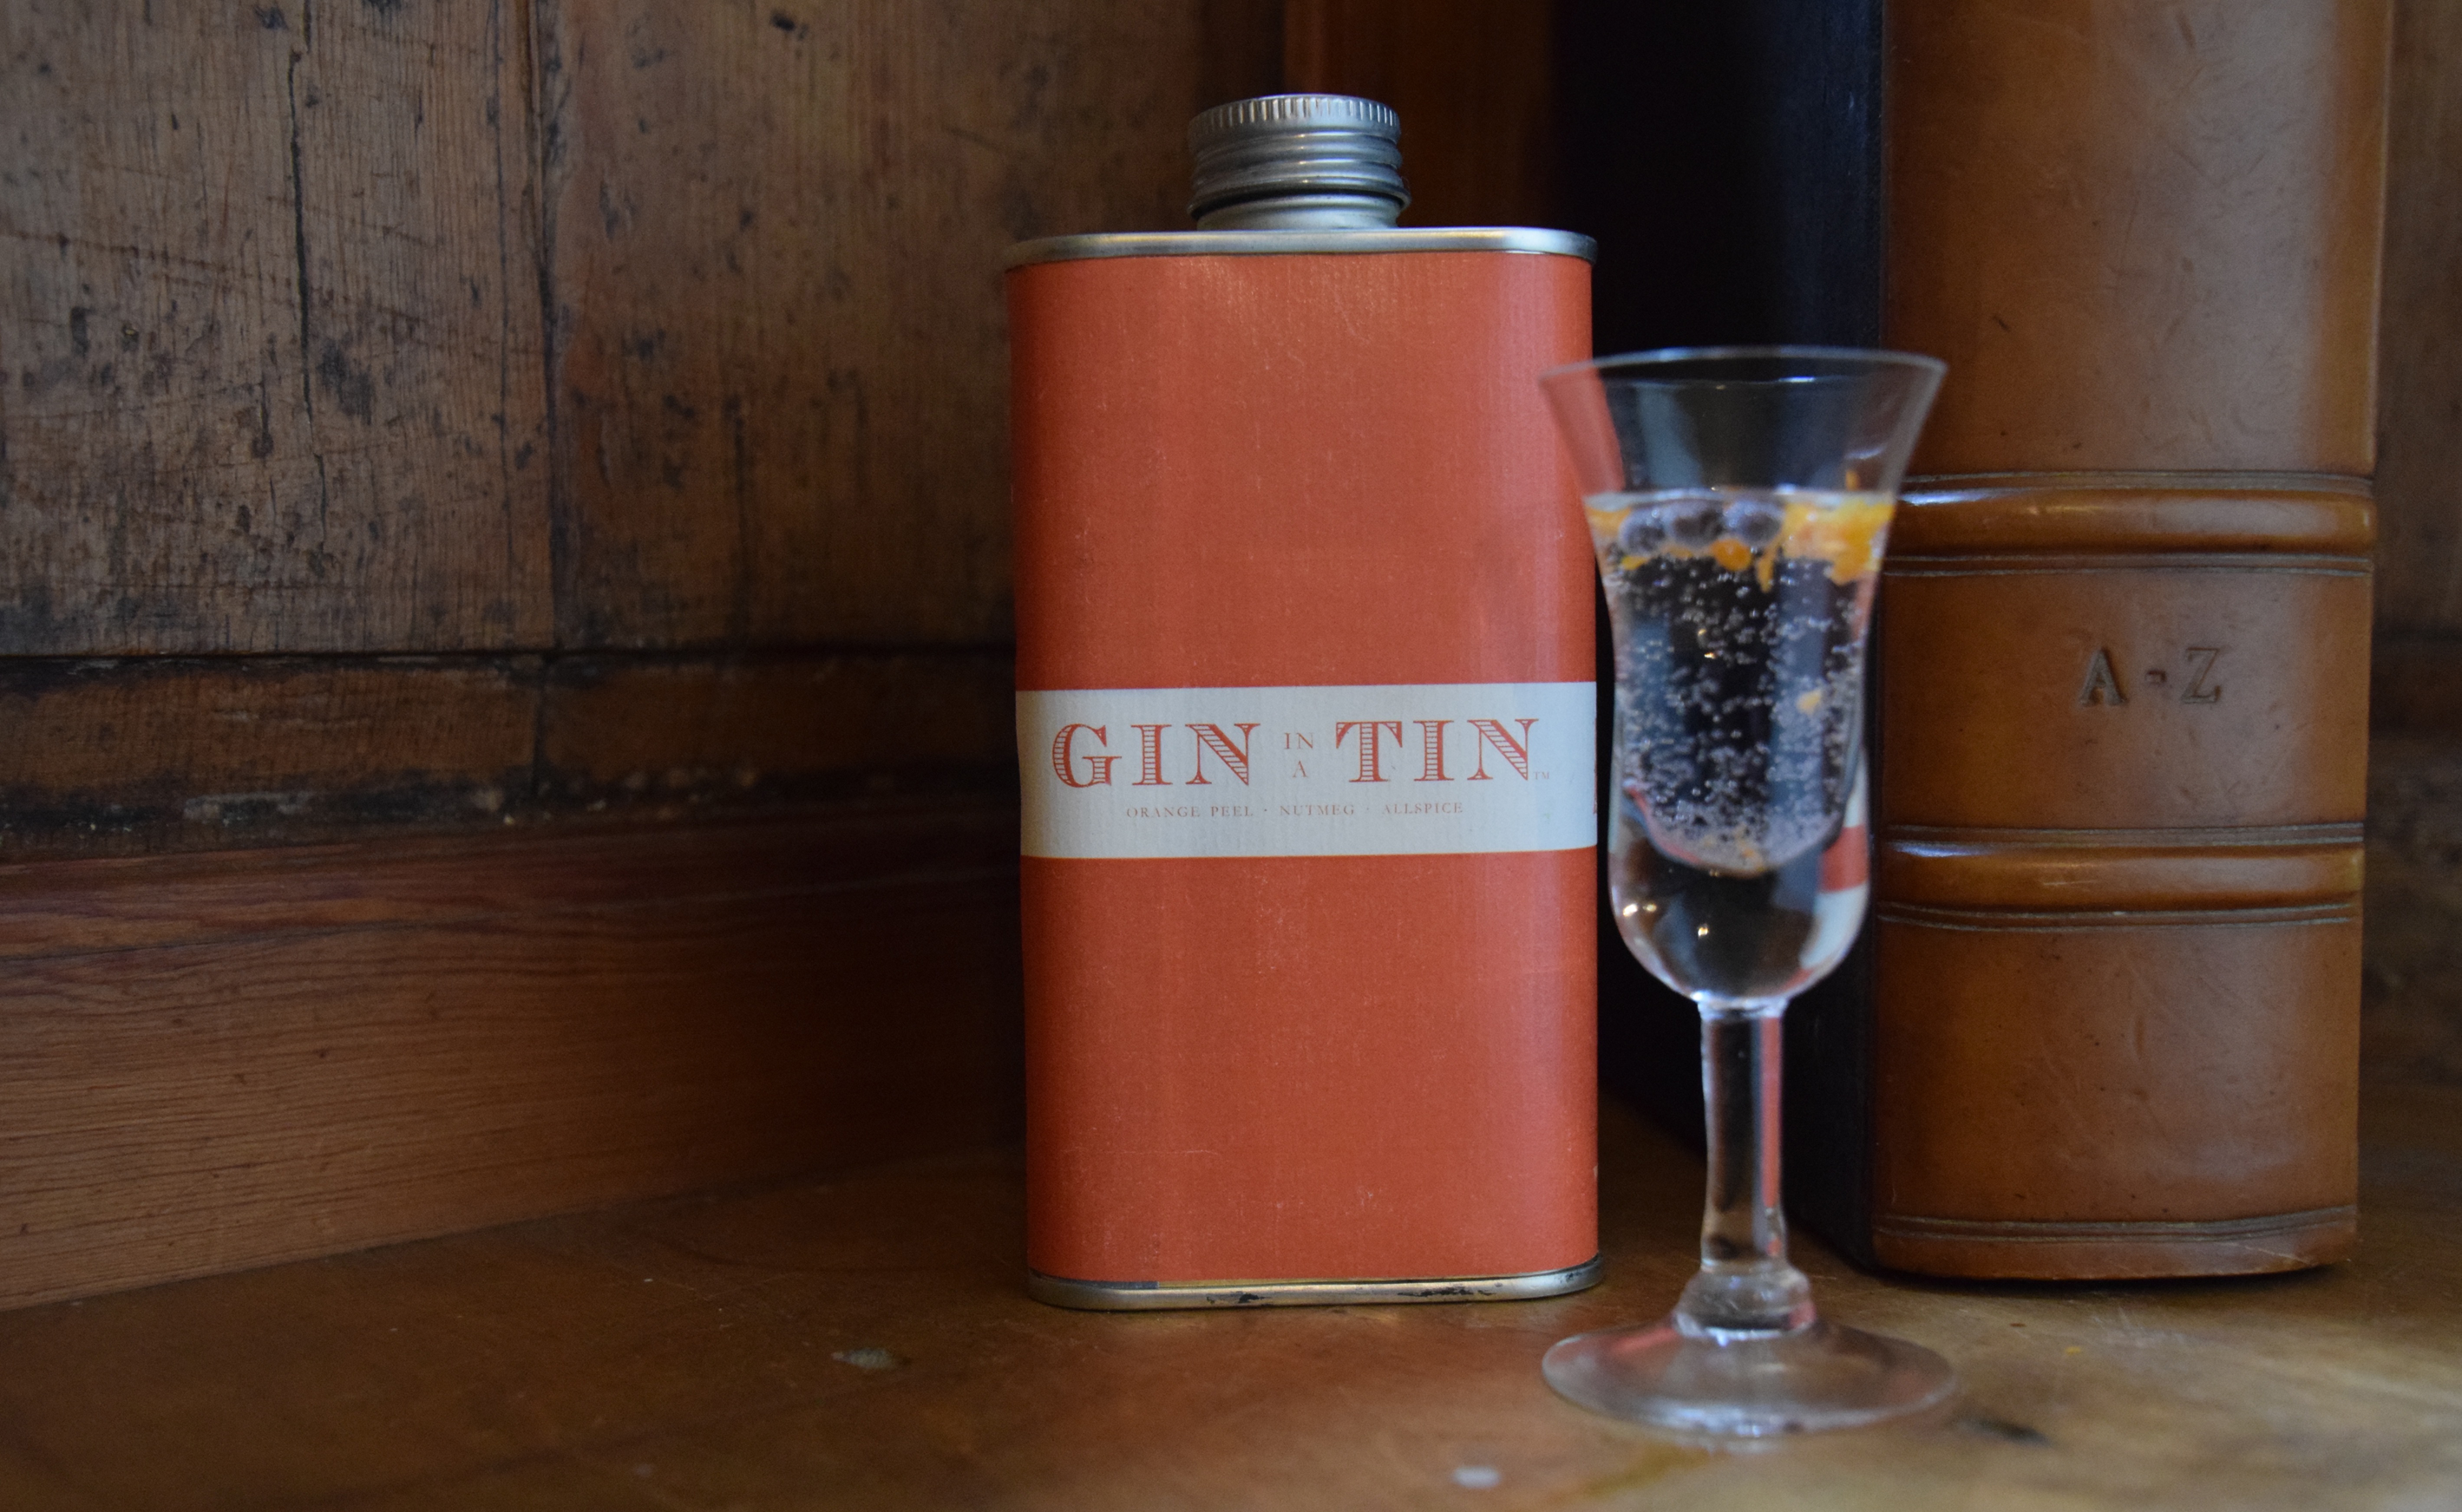 GIN IN A TIN - ORANGE PEEL, NUTMEG & ALLSPICE – WINTER NO.1